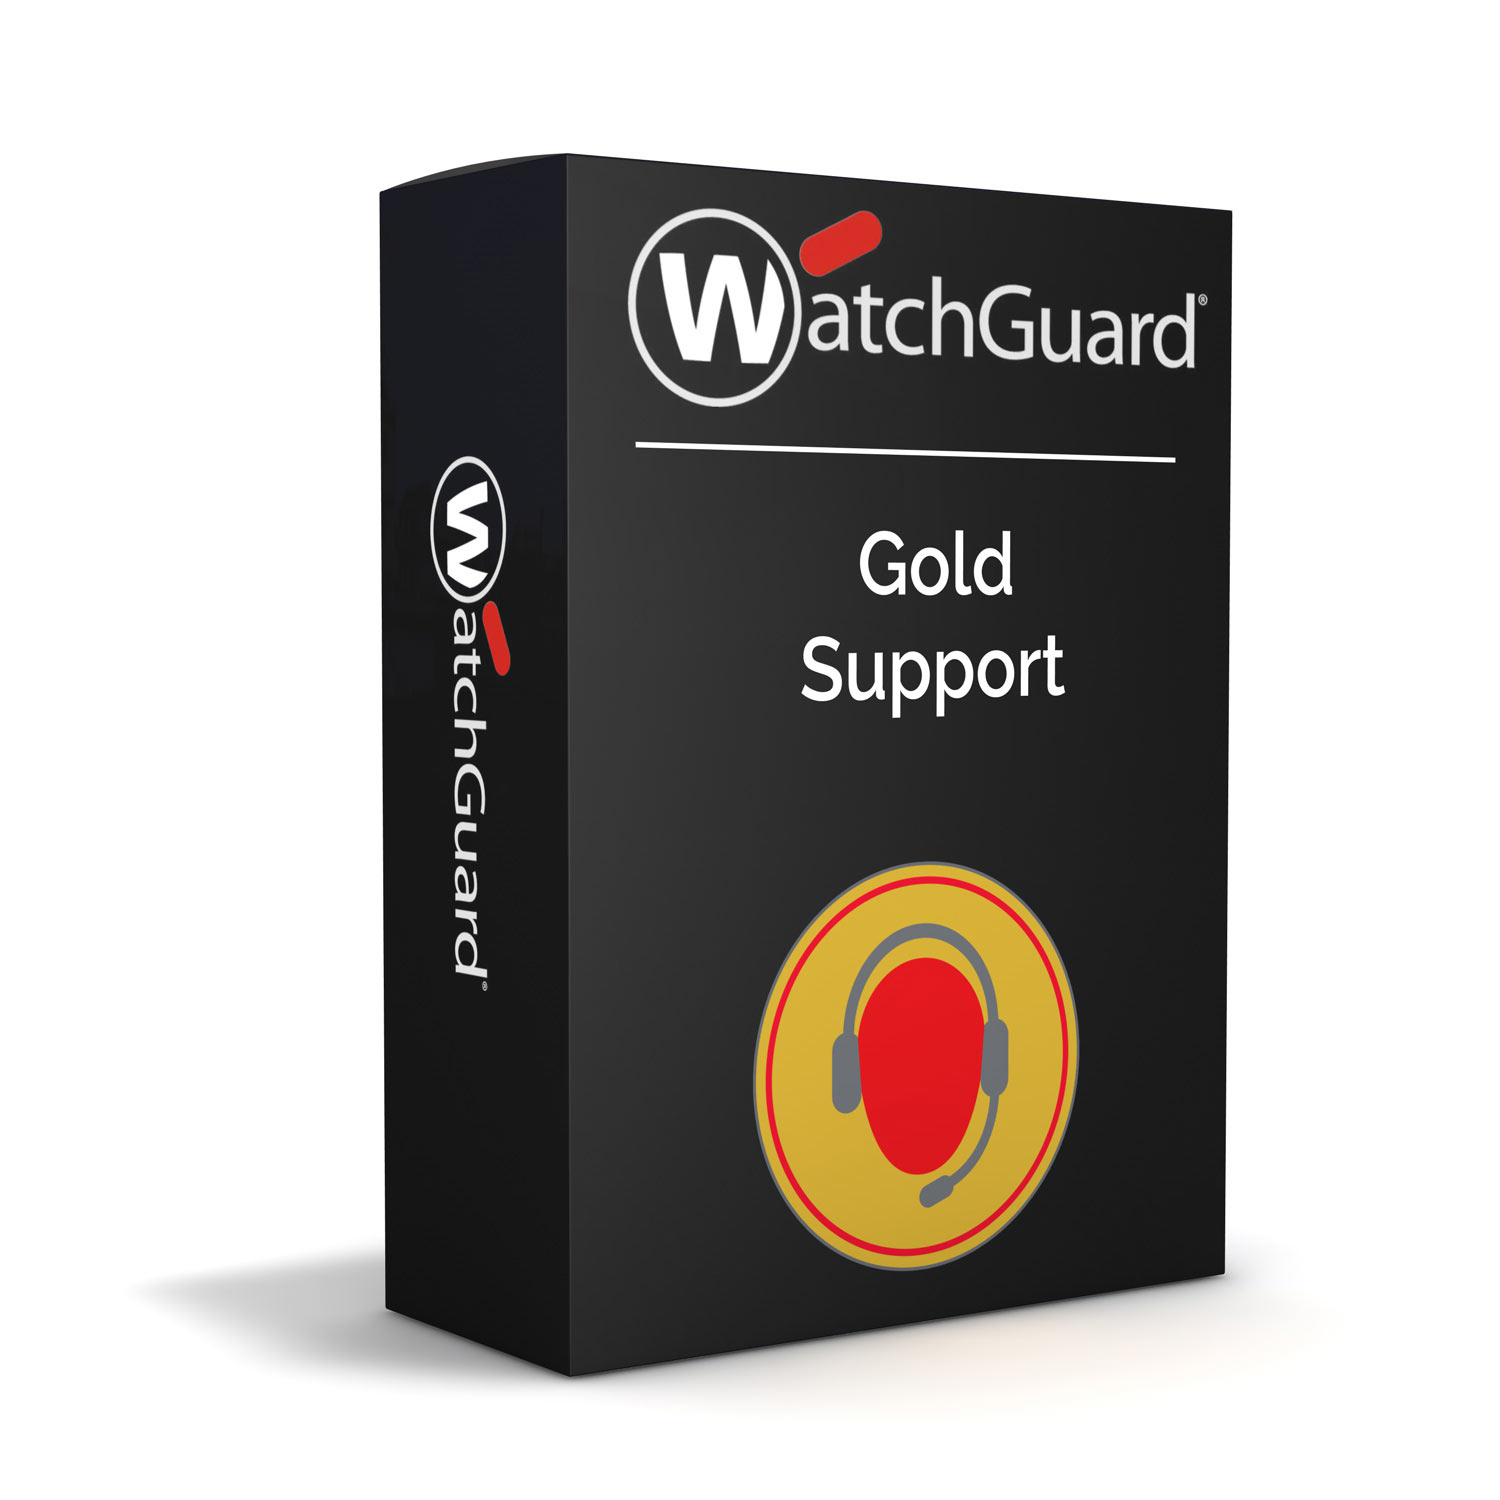 WatchGuard Gold Support Renewal/Upgrade 1-yr for Firebox T40